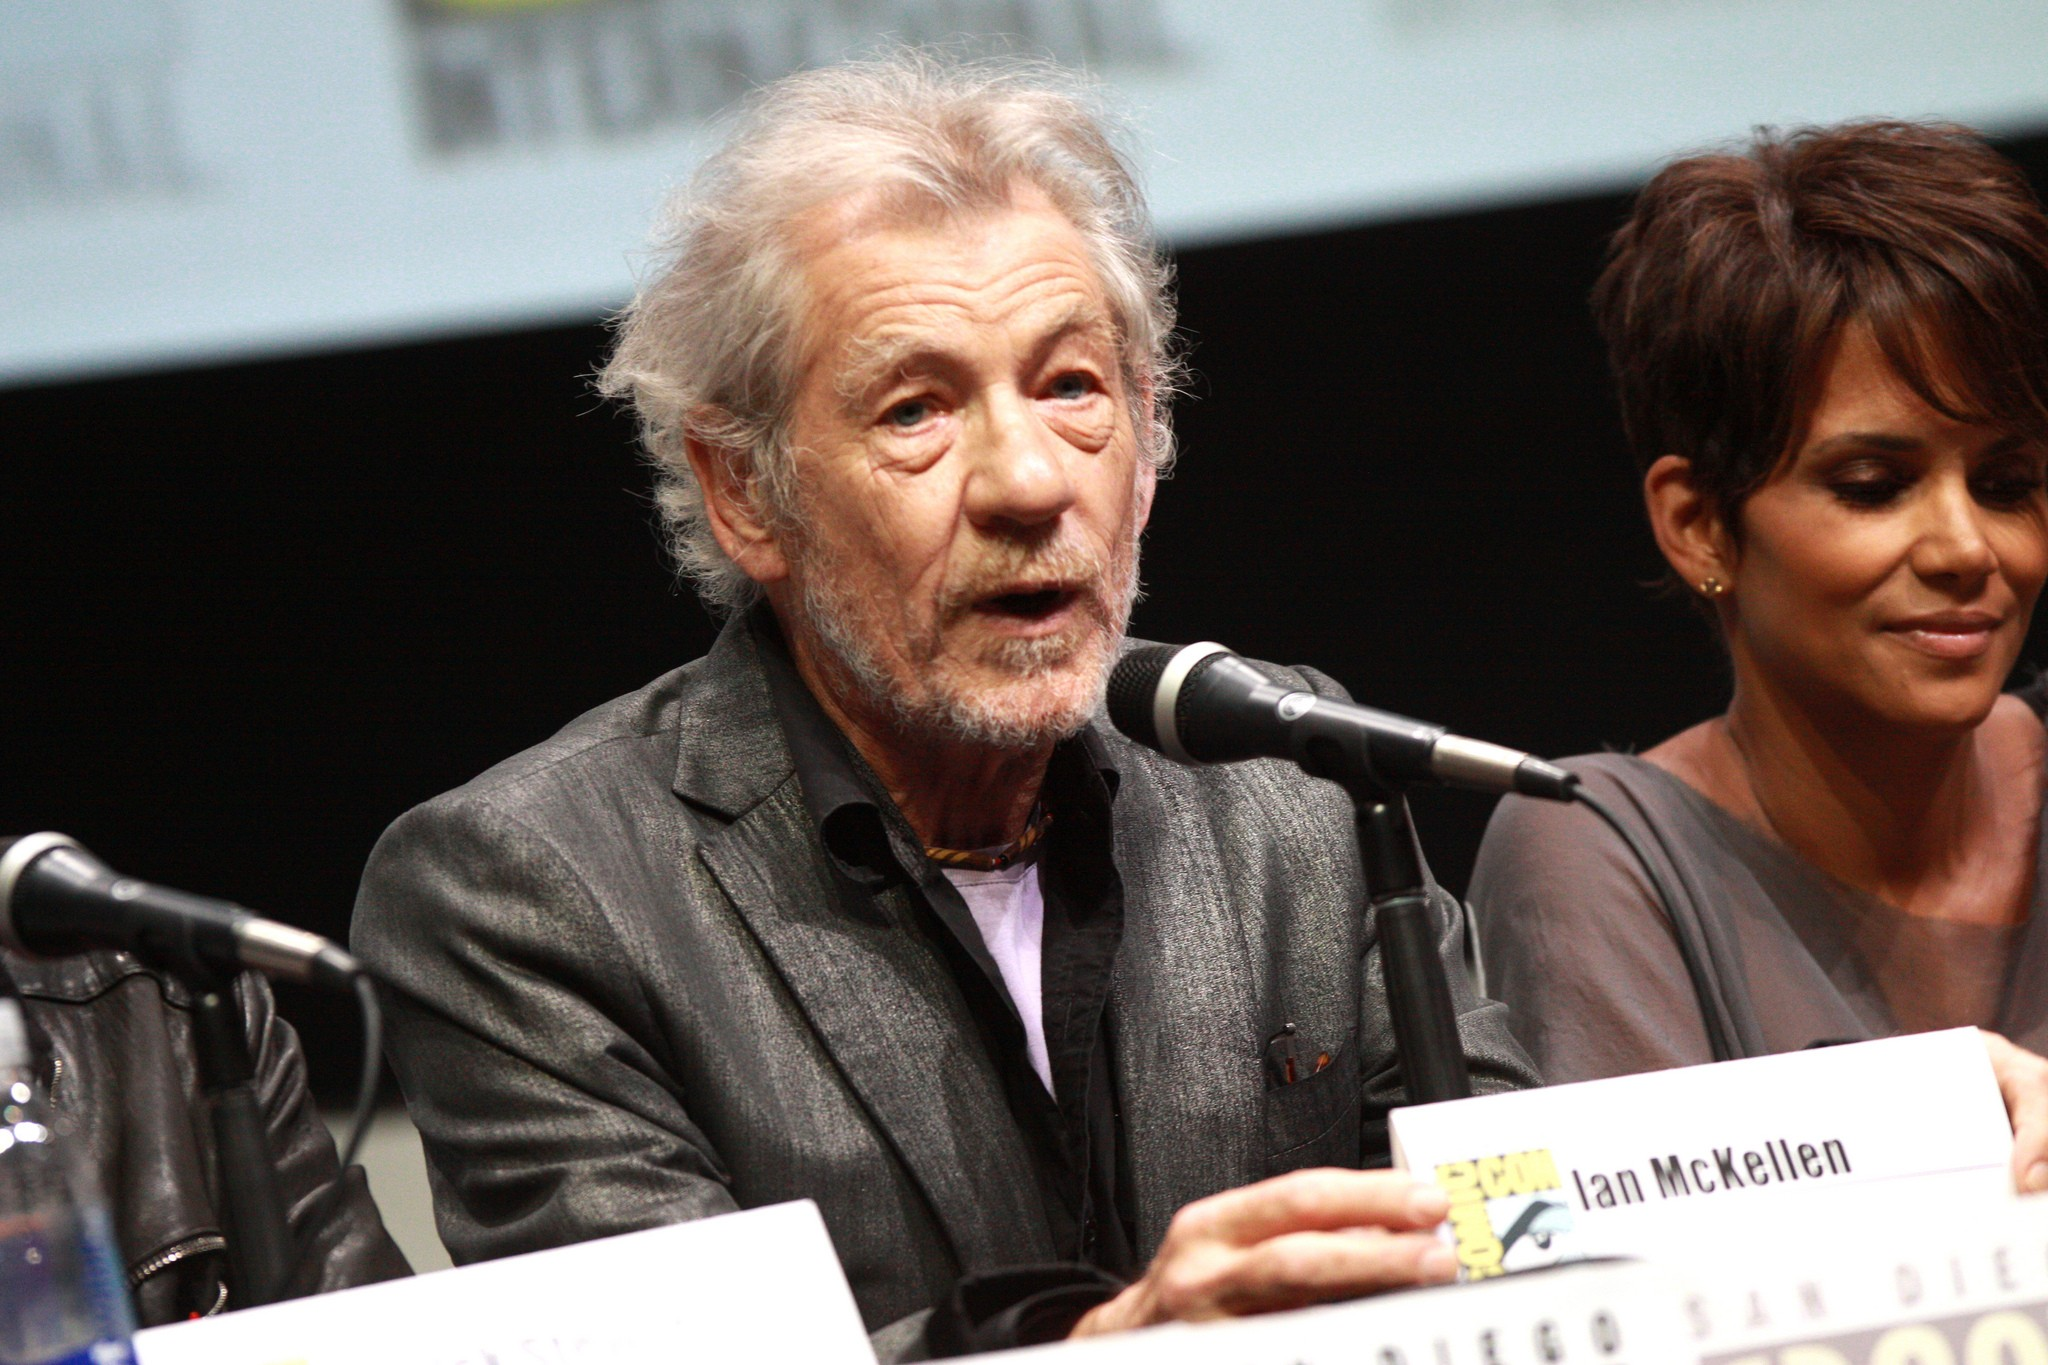 Ian McKellen interpretou Gandalf e Magneto, dois dos favoritos do universo nerd (Foto: Flickr/Gage Skidmore)